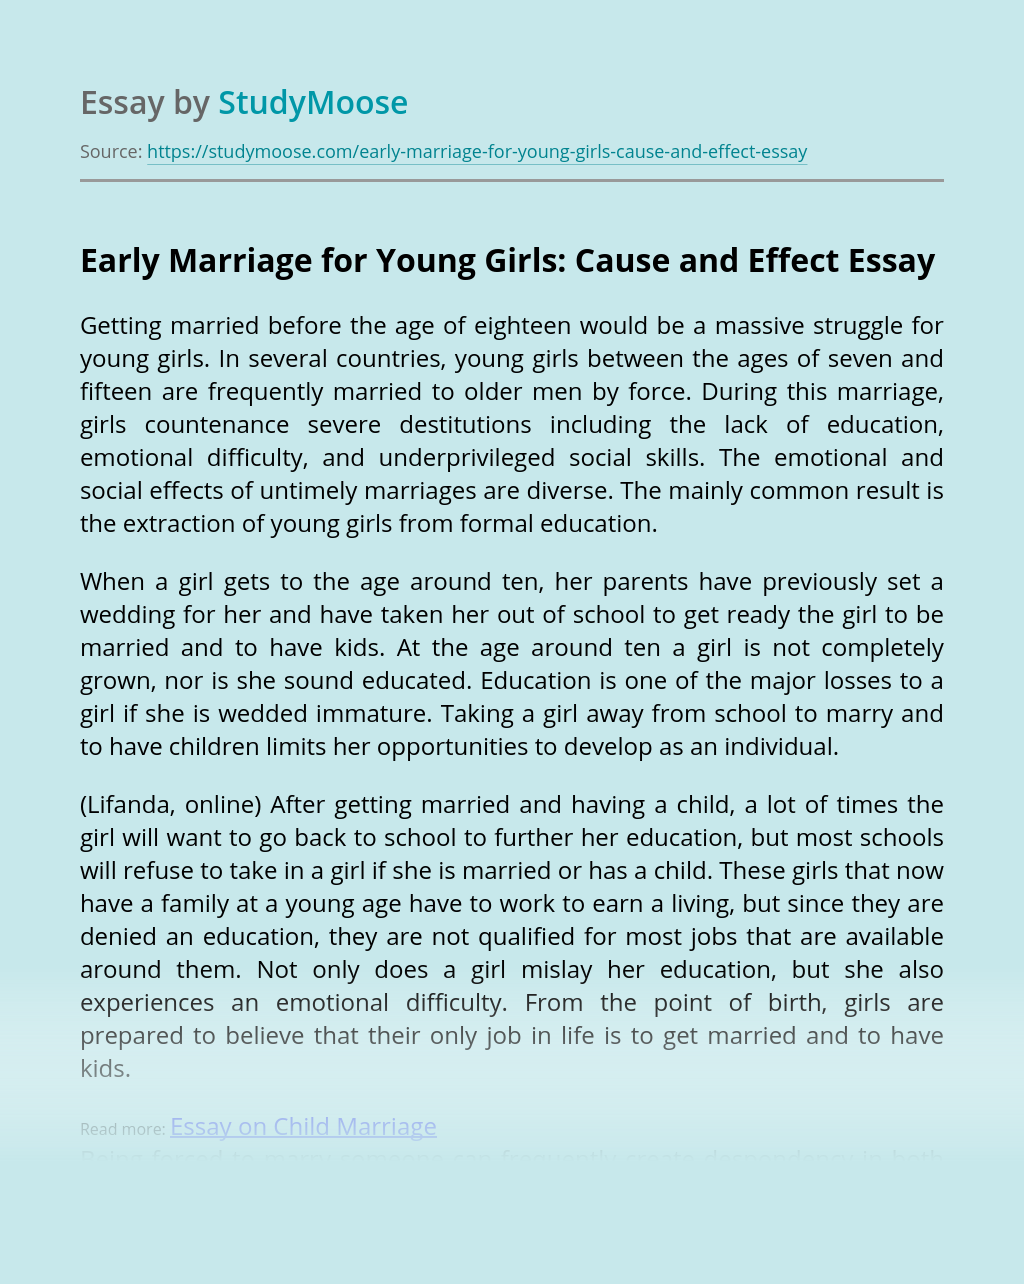 Early Marriage for Young Girls: Cause and Effect